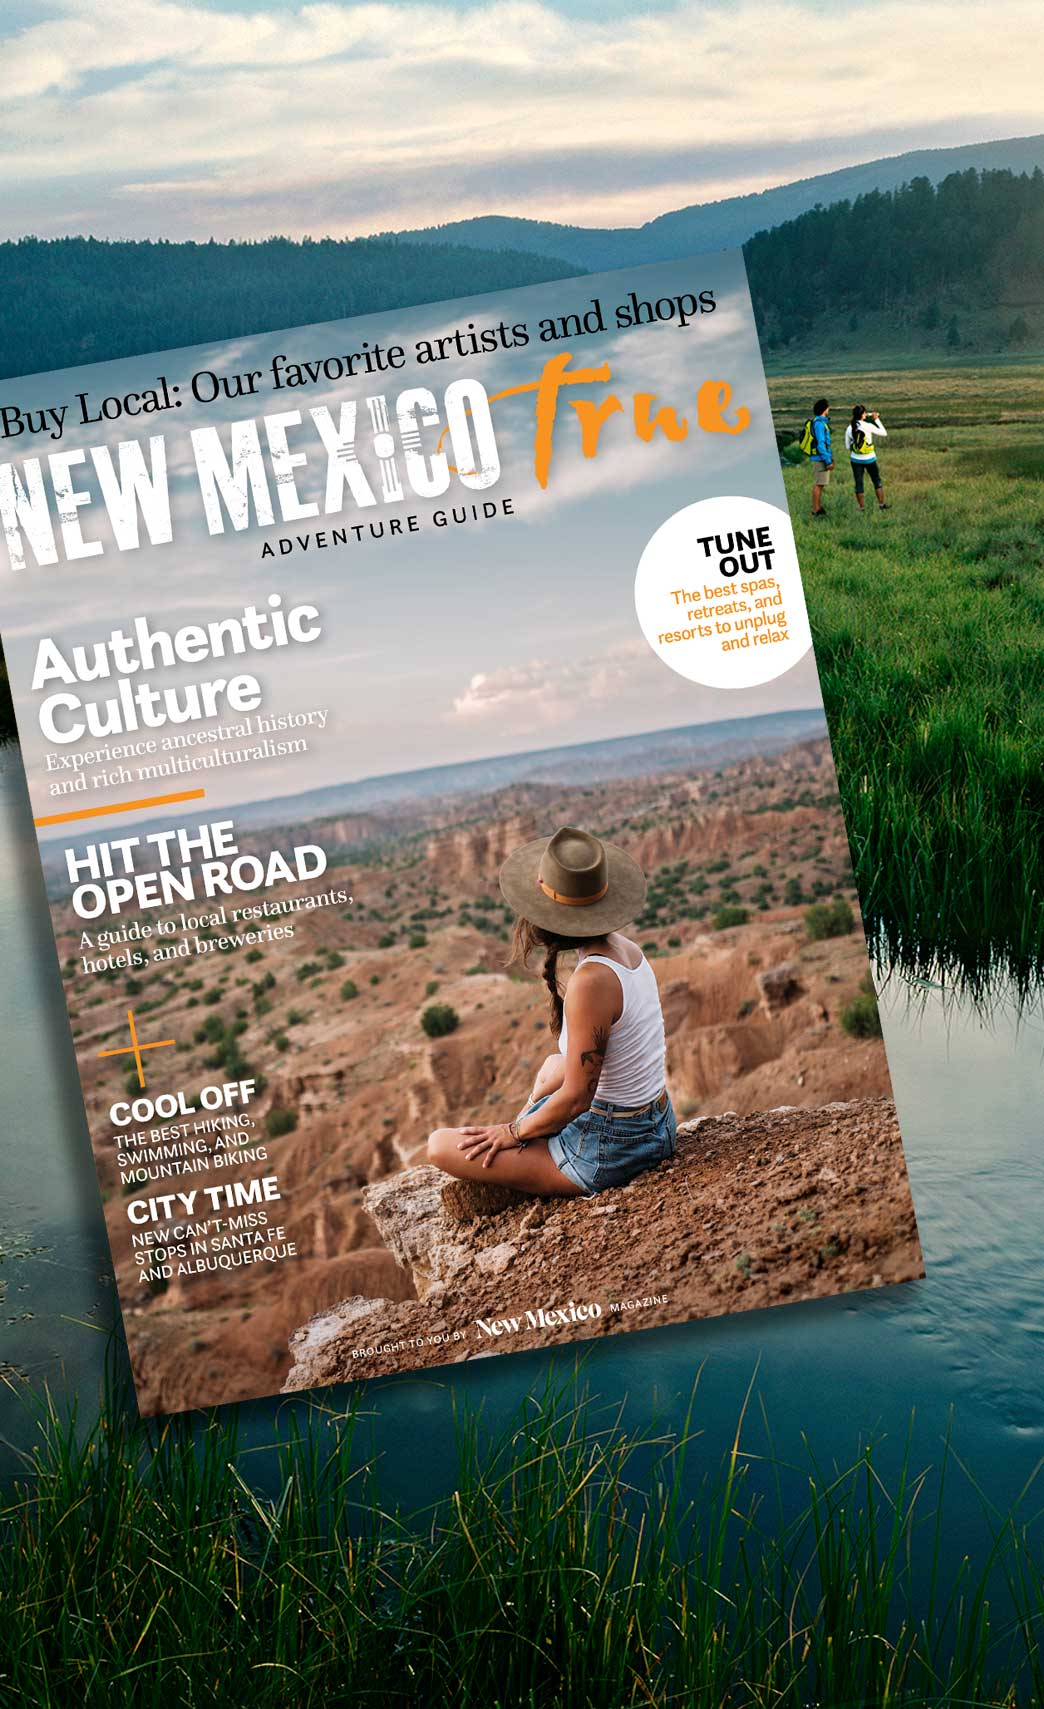 New Mexico Tourism & Travel - Vacations, Attractions